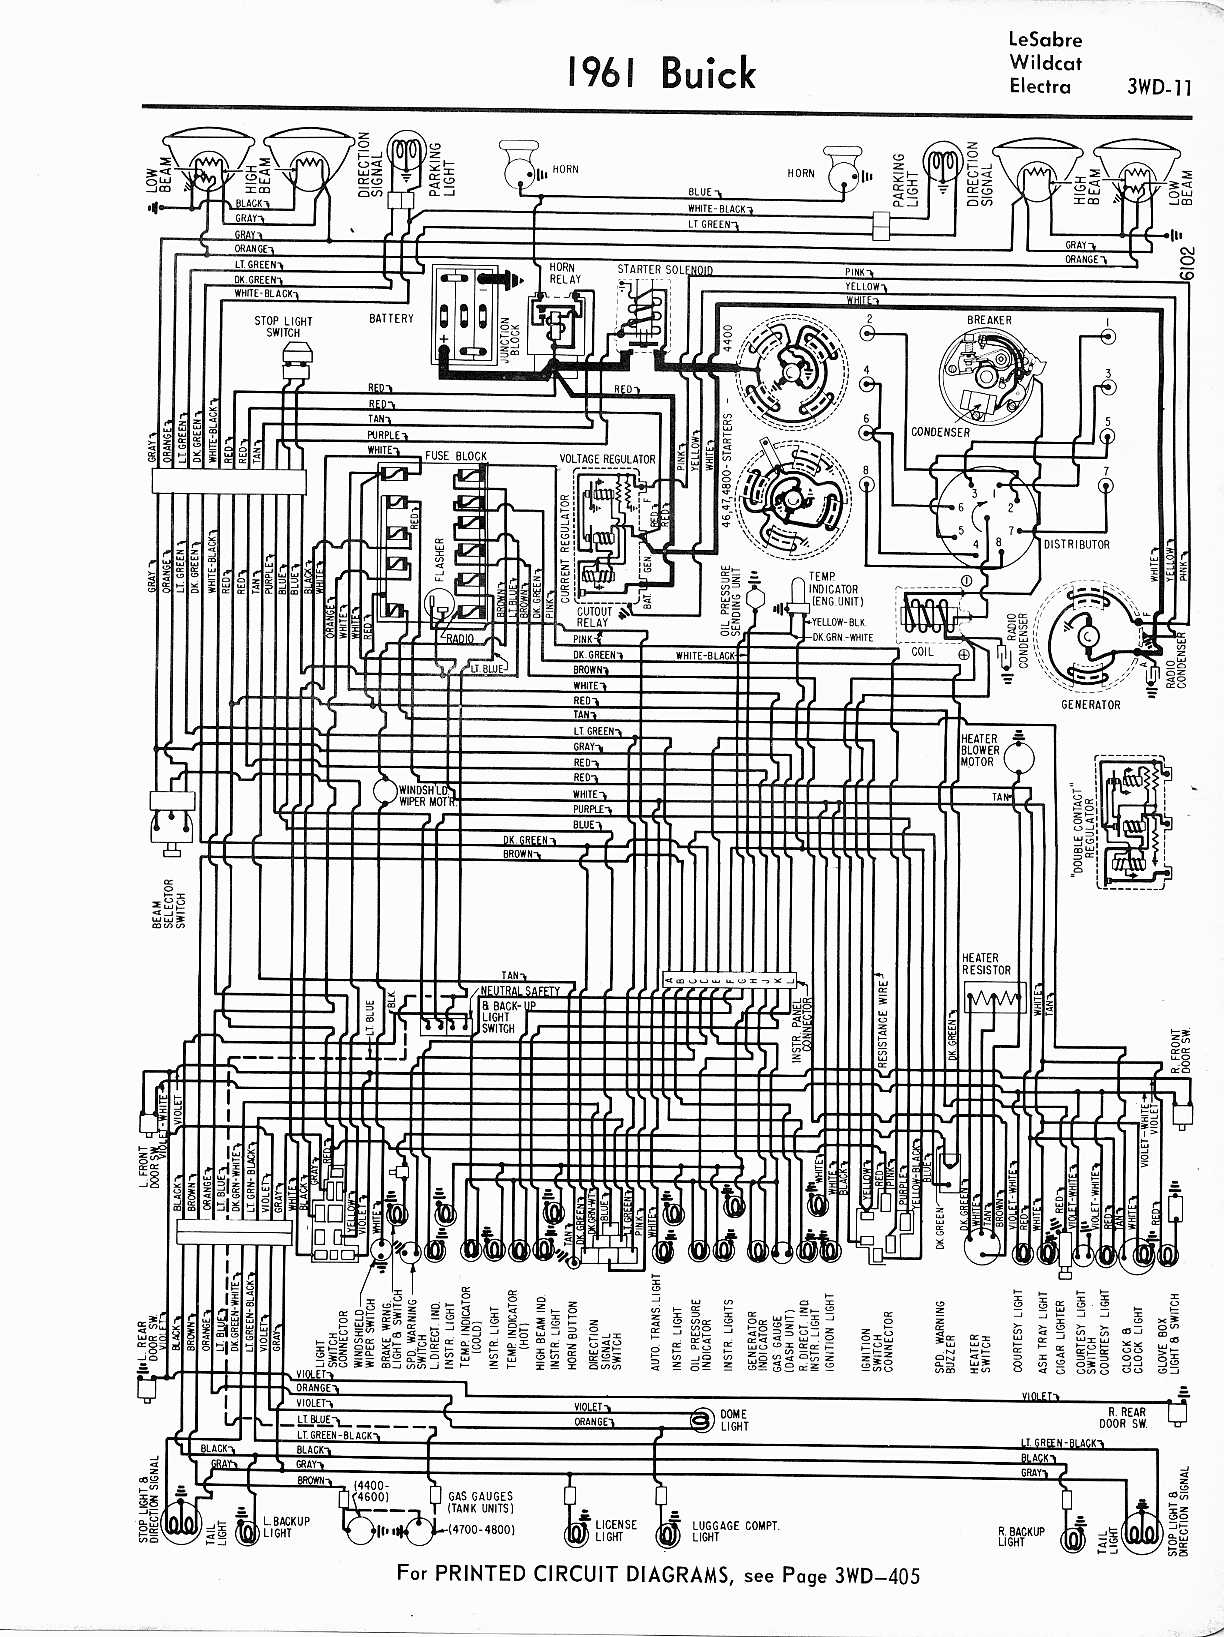 MWireBuic65_3WD 011 buick wiring diagrams 1957 1965 2001 buick regal wiring diagram at reclaimingppi.co